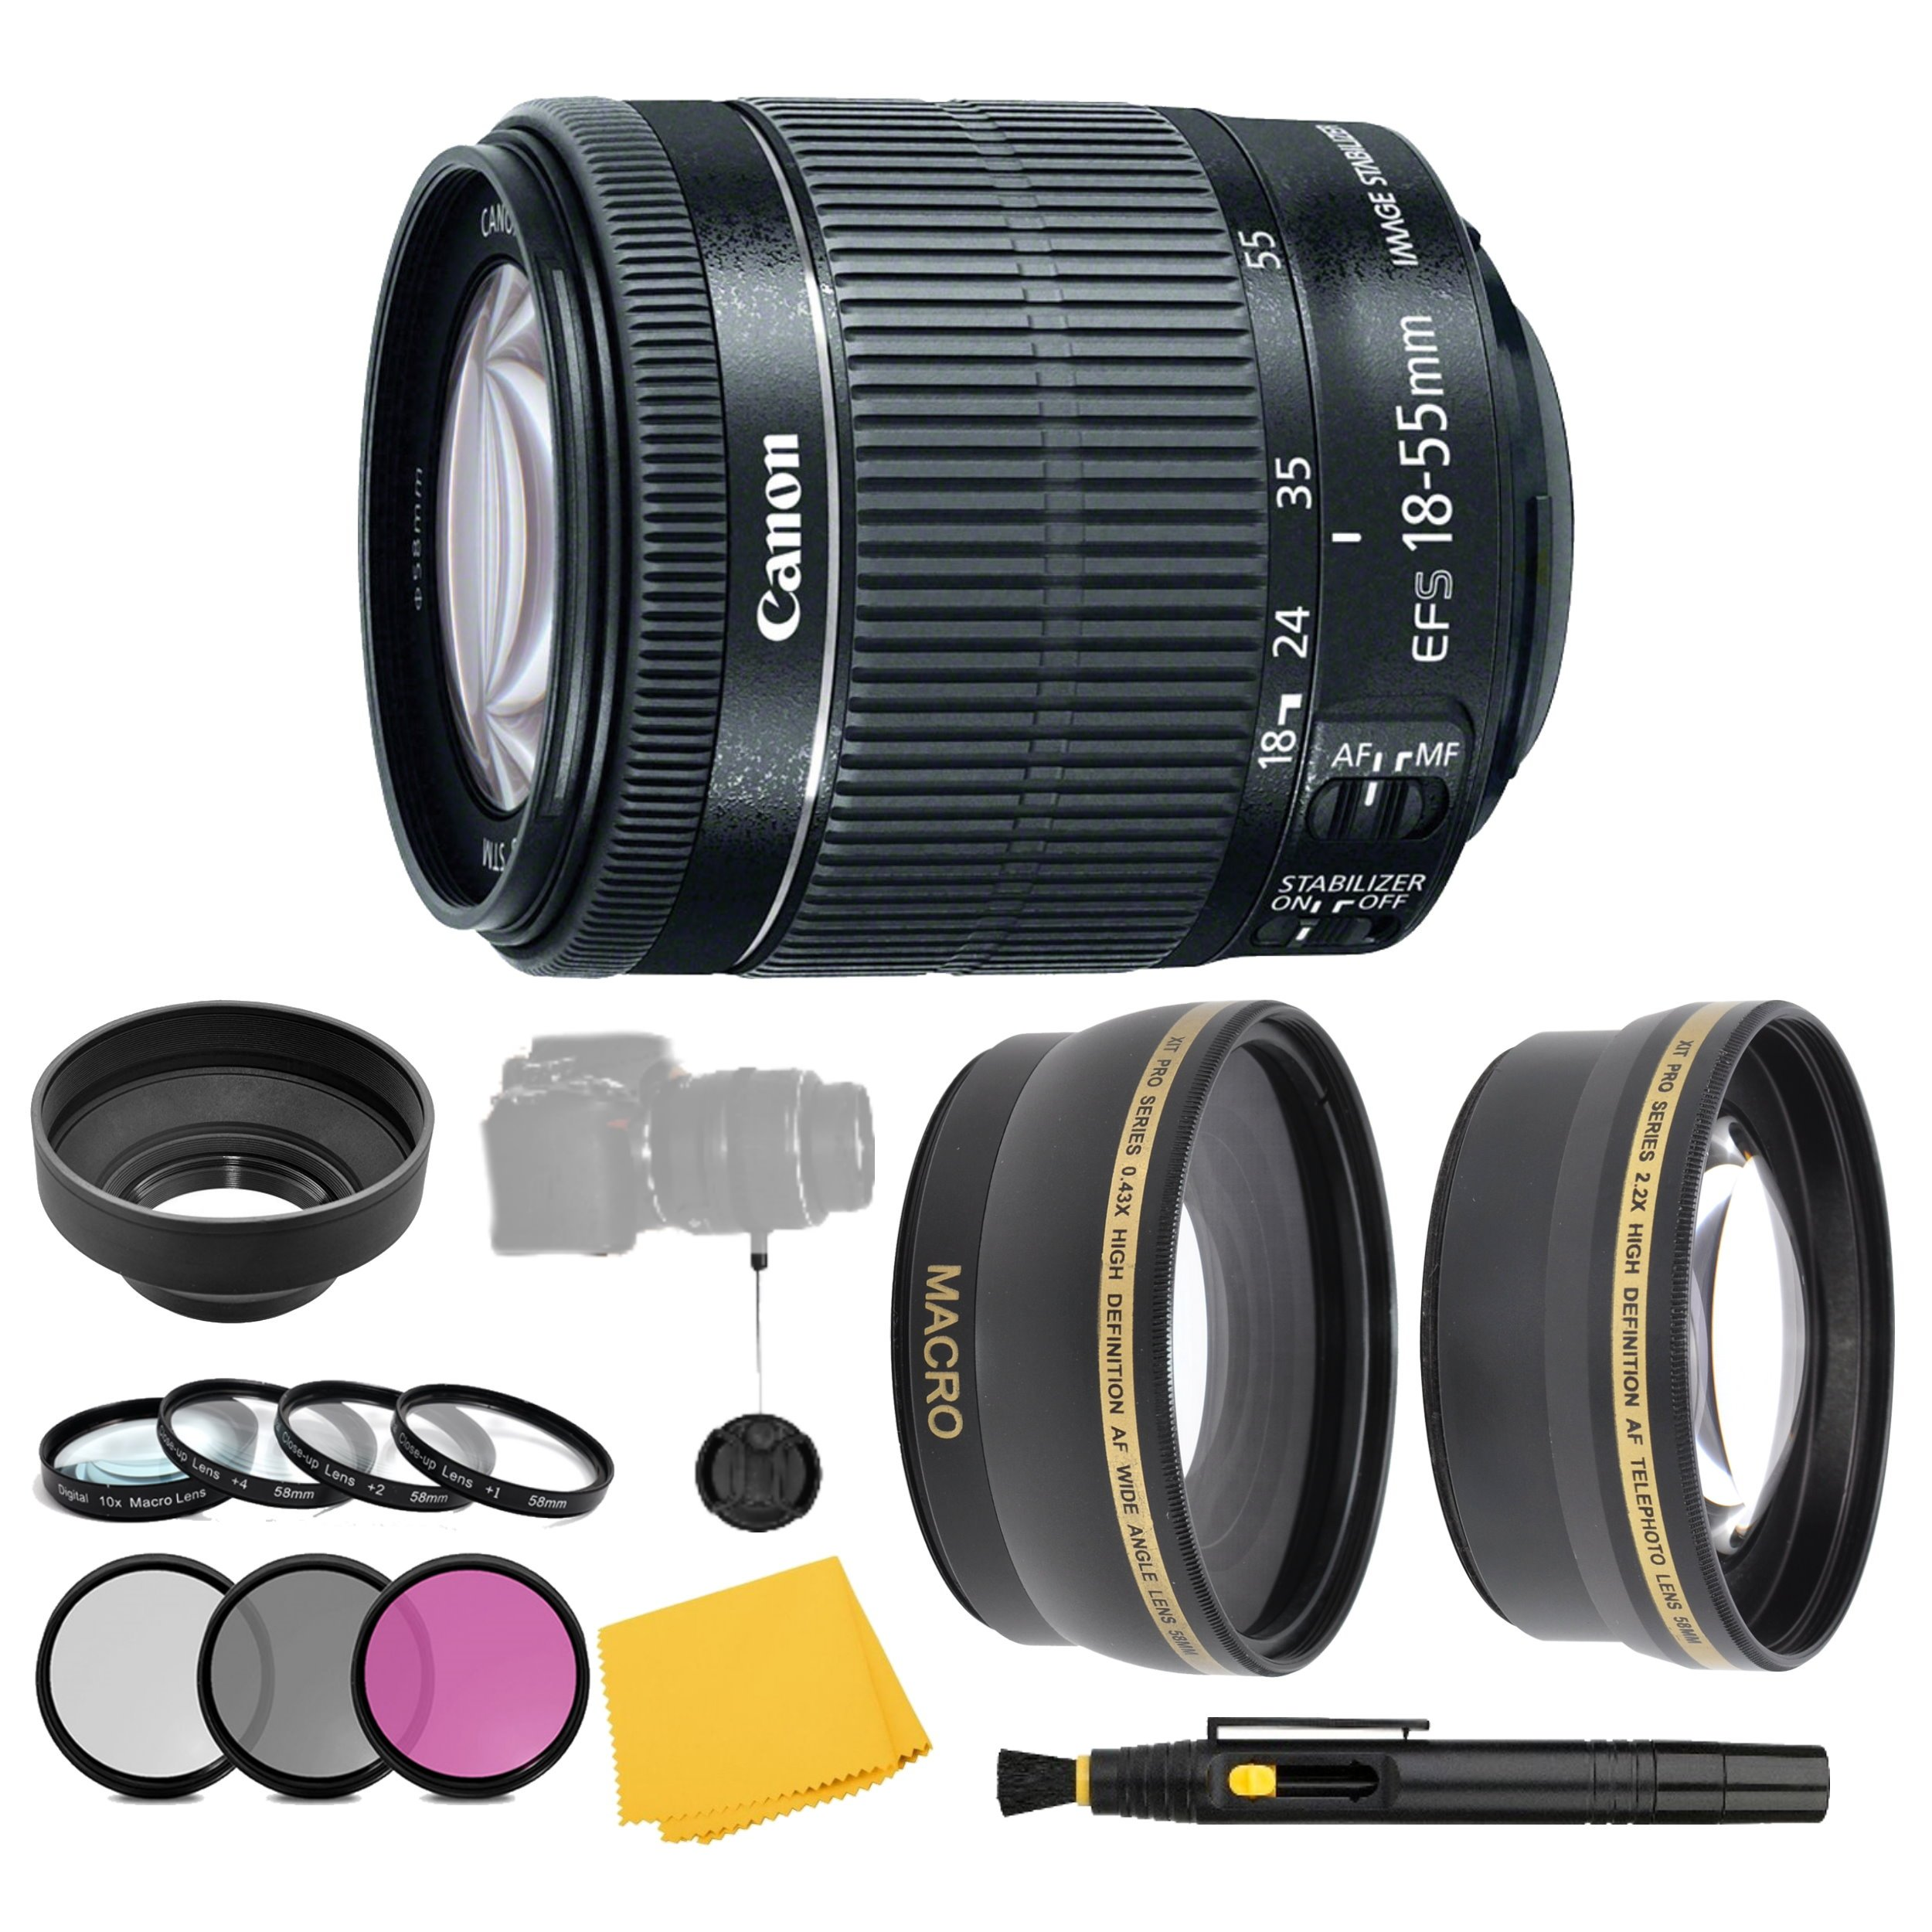 Canon EF-S 18-55mm f/3.5-5.6 IS STM Lens + Filter Set + Close Up Macro Filters + Wide Angle Lens + Telephoto Lens + Pro Accessory Bundle - 18-55mm STM: International Version (No Warranty) by AOM